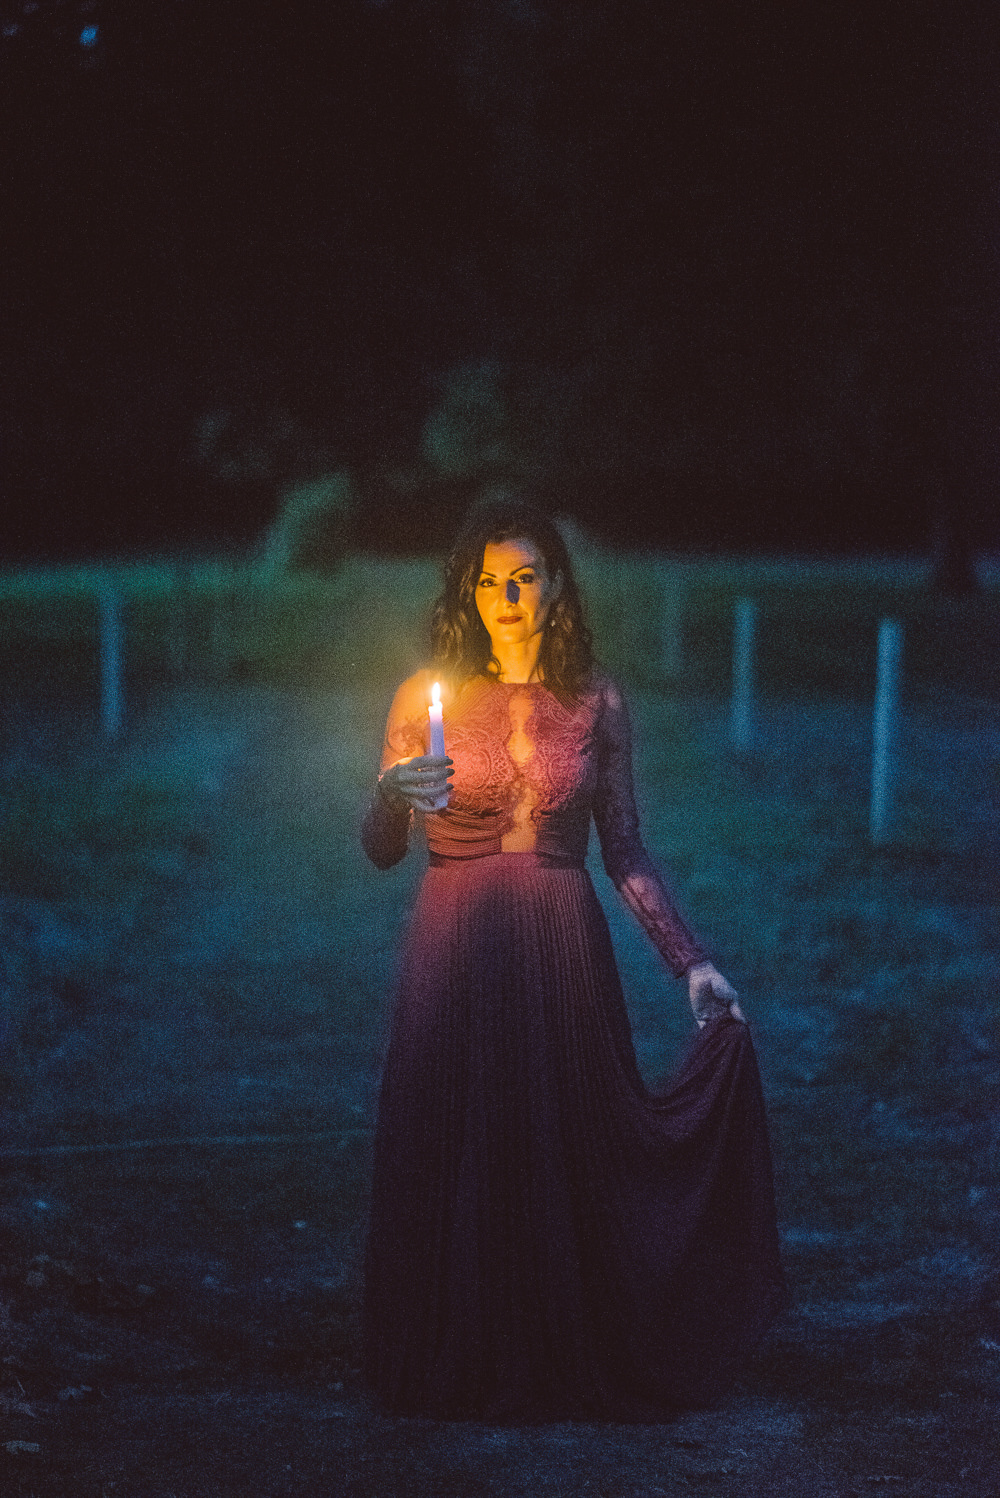 Candle Light Lantern Deep Purple Bridesmaid Dress Long Maxi Ethereal Magical Golden Hour Wedding Ideas Dhw Photography